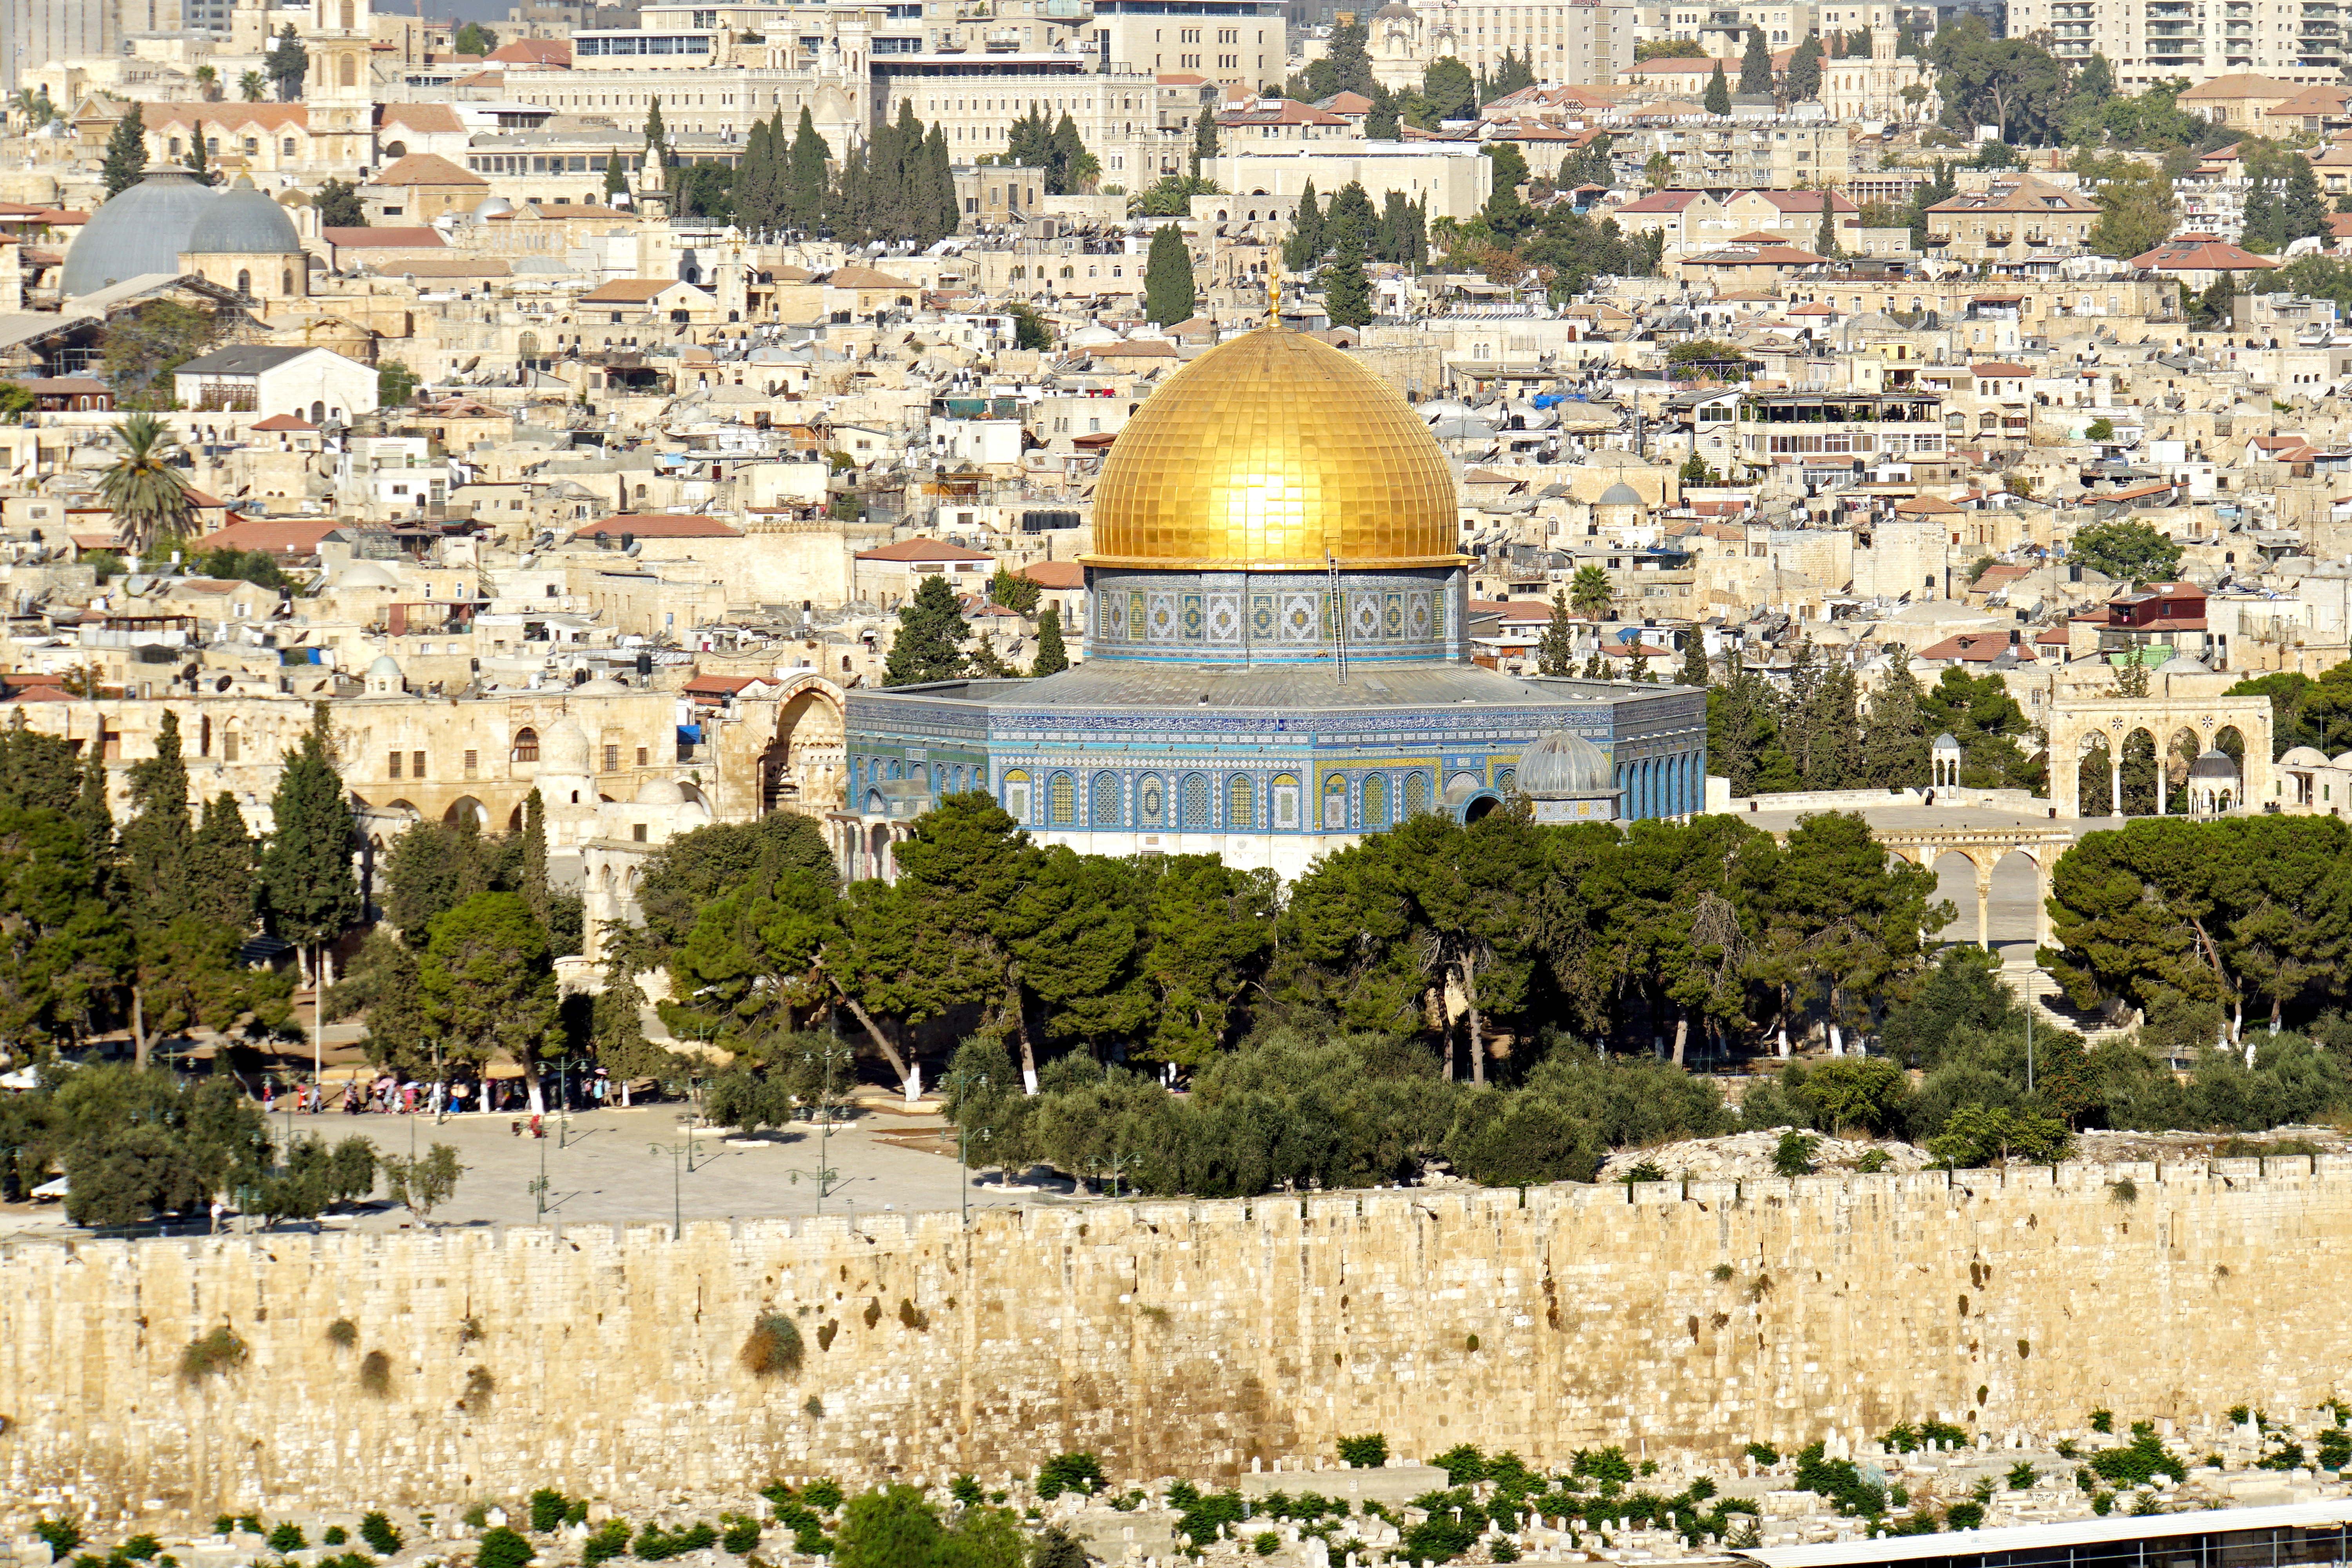 Broader Regional Implications of Trump's Jerusalem Embassy Move